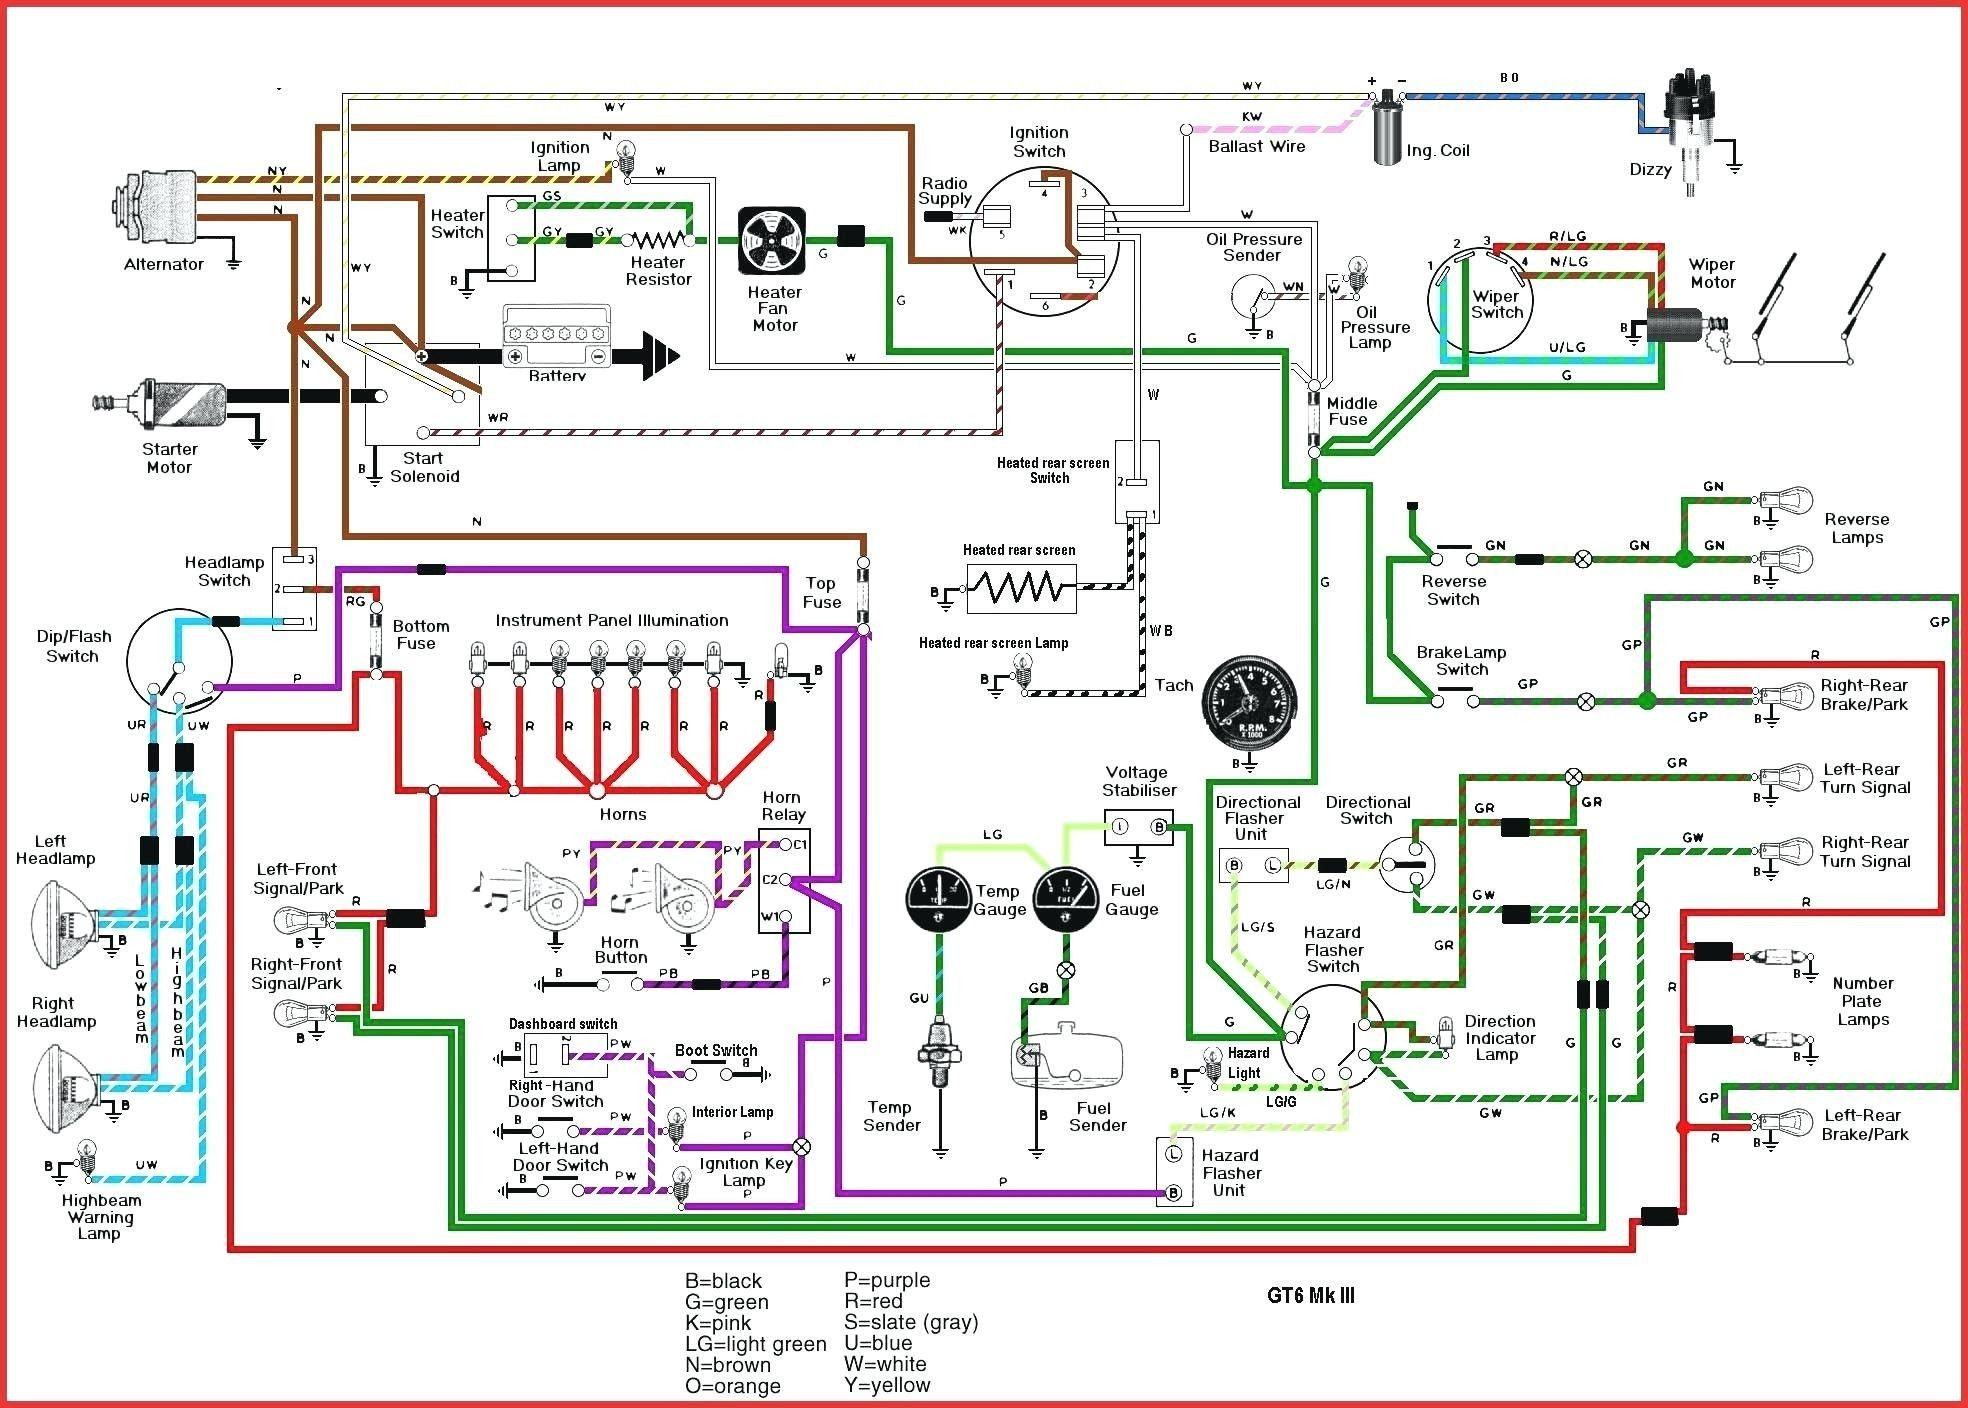 New Wiring Diagram For House Alarm System Diagram Diagramtemplate Diagramsample Electrical Circuit Diagram Electrical Diagram Electrical Wiring